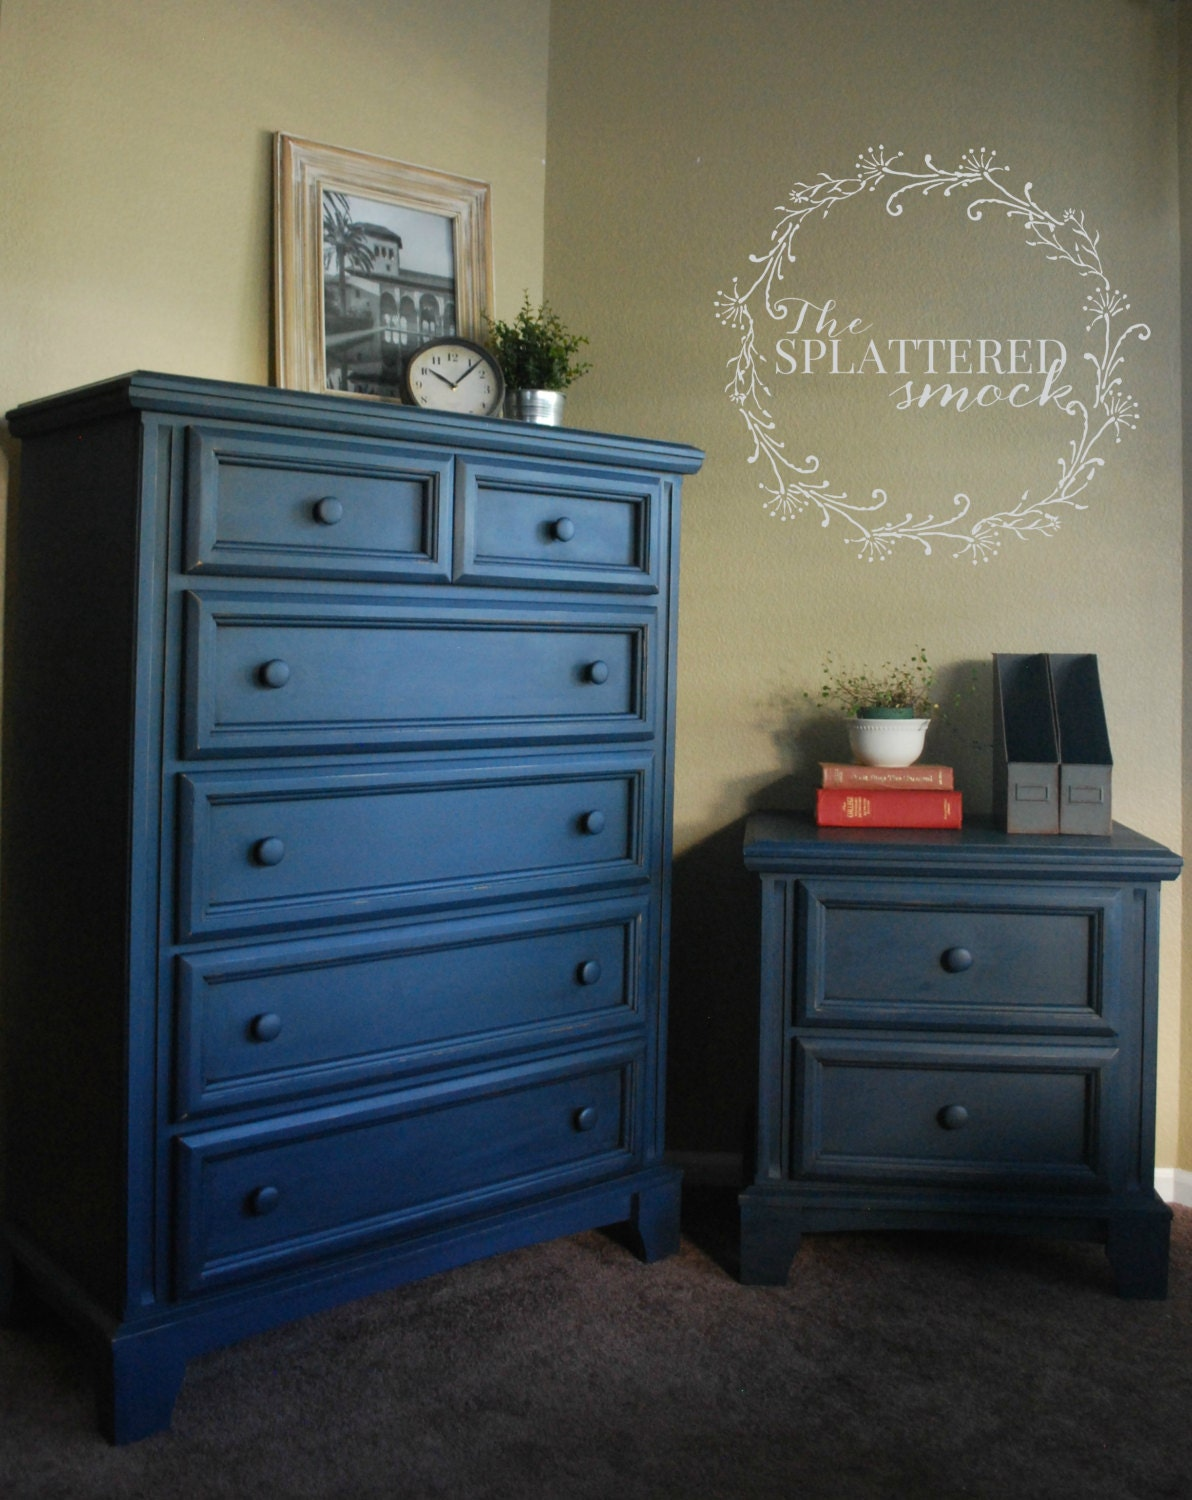 Sold Custom Painted Dressers In Annie By Thesplatteredsmock